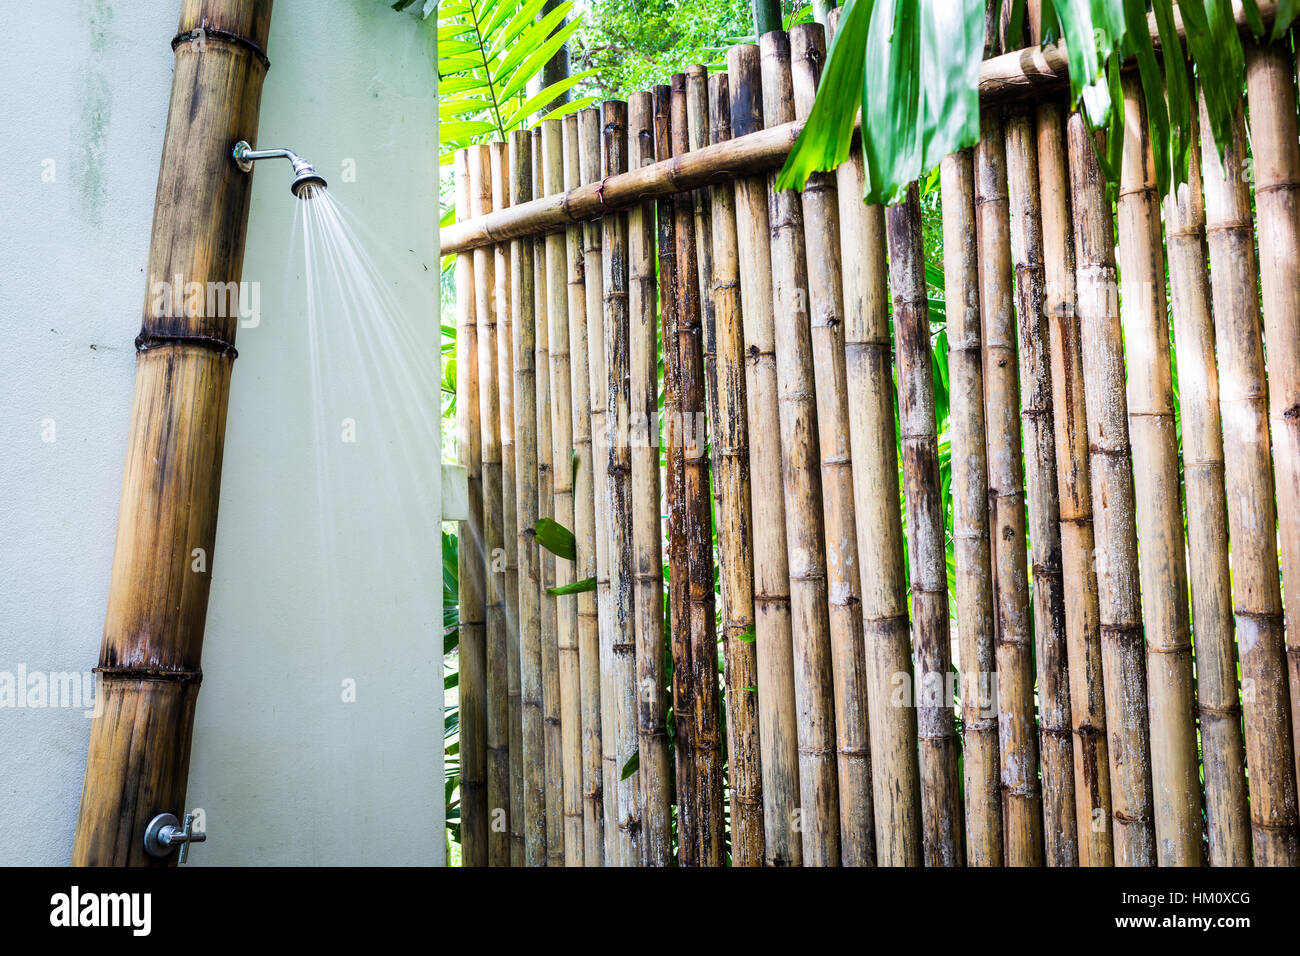 Bamboo Outdoor Shower Enclosures Bamboo Walls Stock Photos And Bamboo Walls Stock Images Alamy